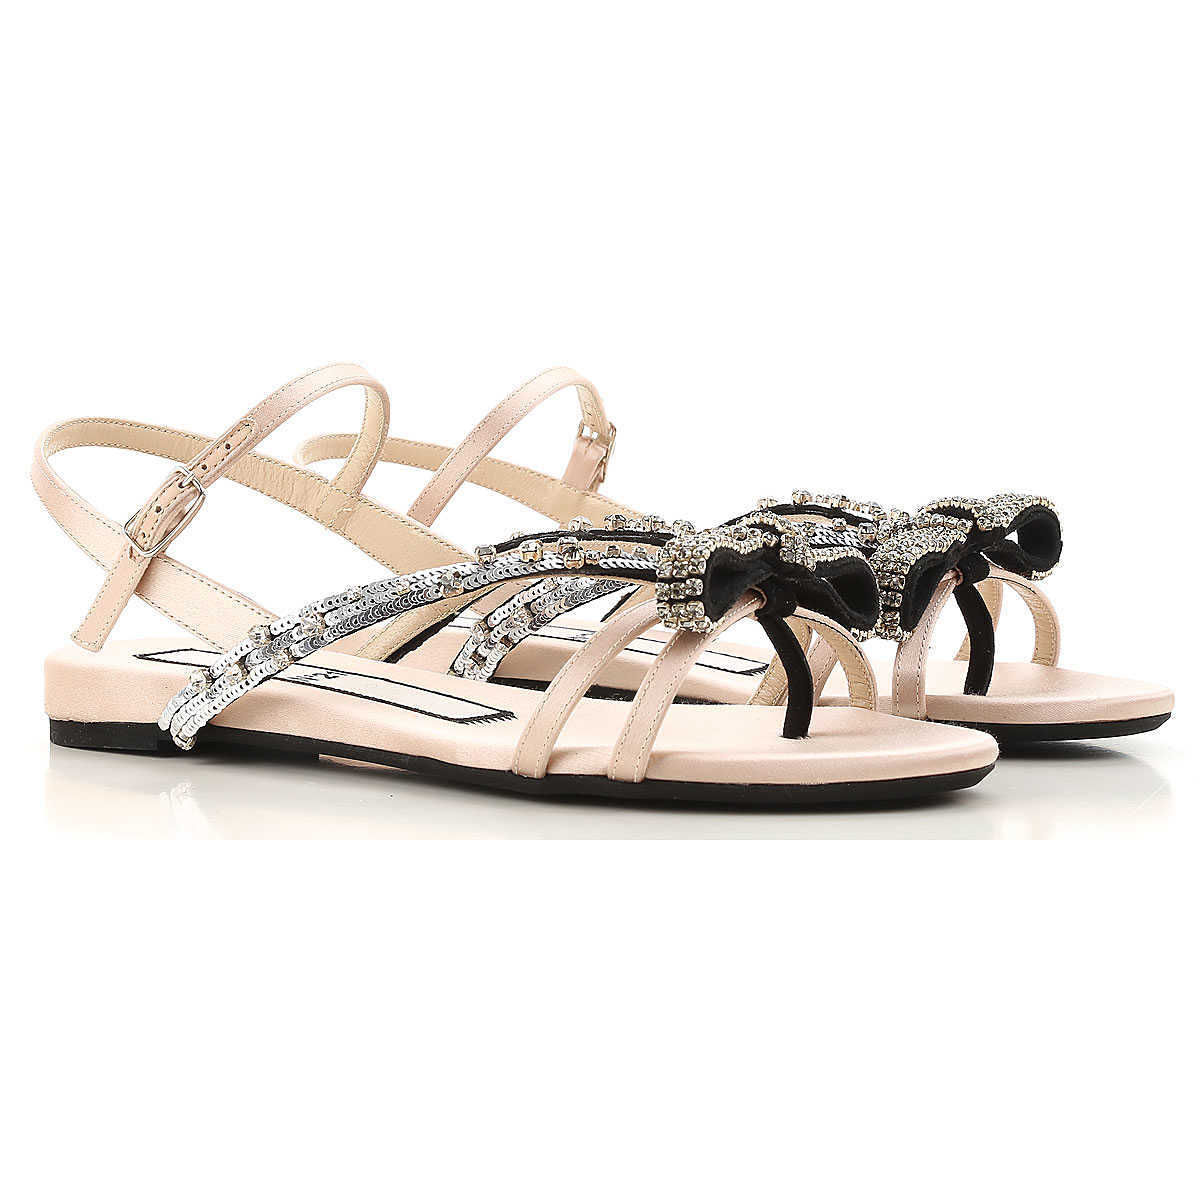 NO 21 Sandals for Women On Sale in Outlet Powder - GOOFASH